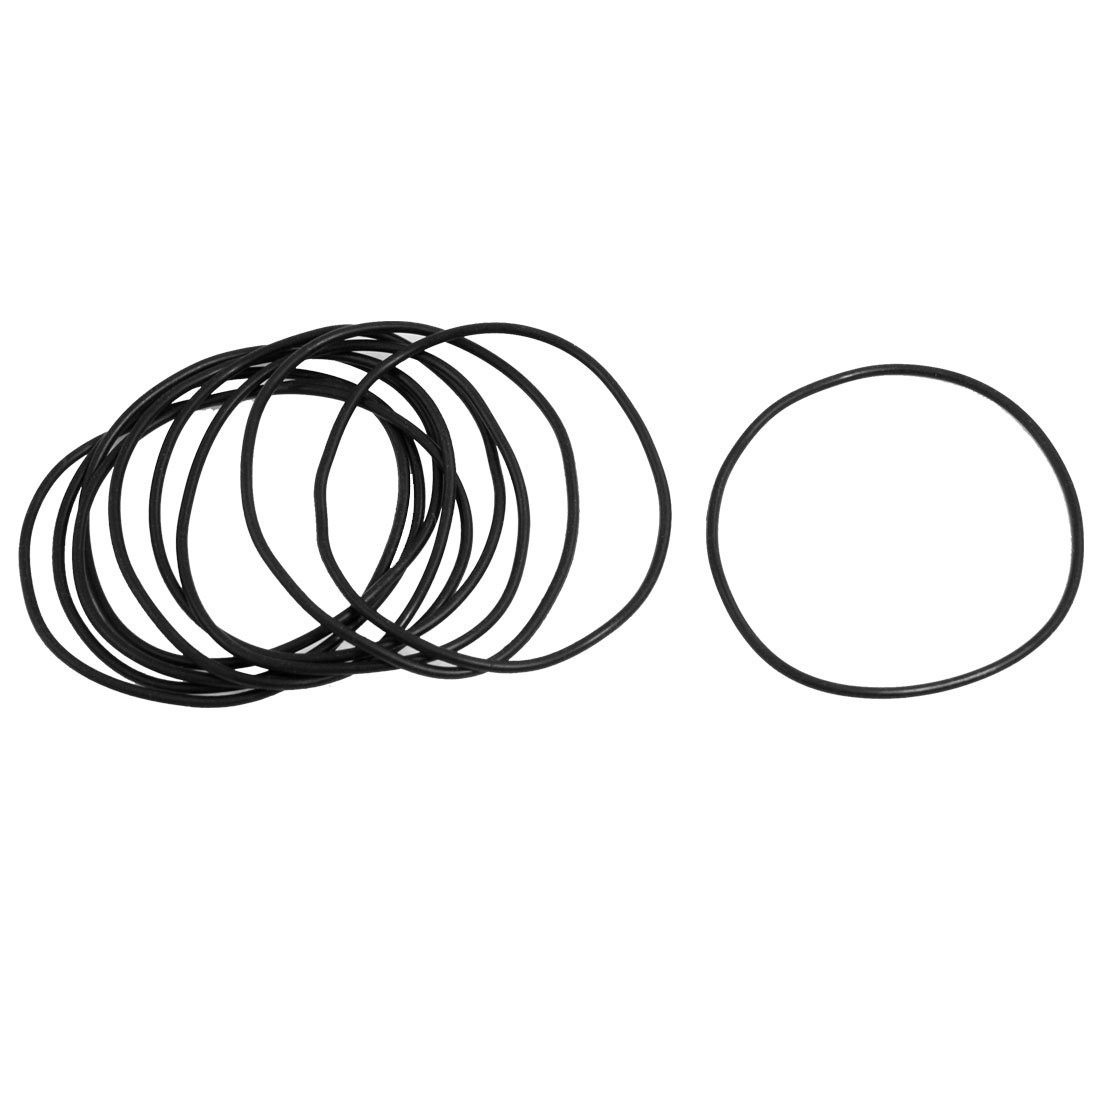 10 Pcs 2.5mm x 72mm Rubber Sealing Oil Filter O Rings Gasket Black Sourcingmap a13030700ux0426